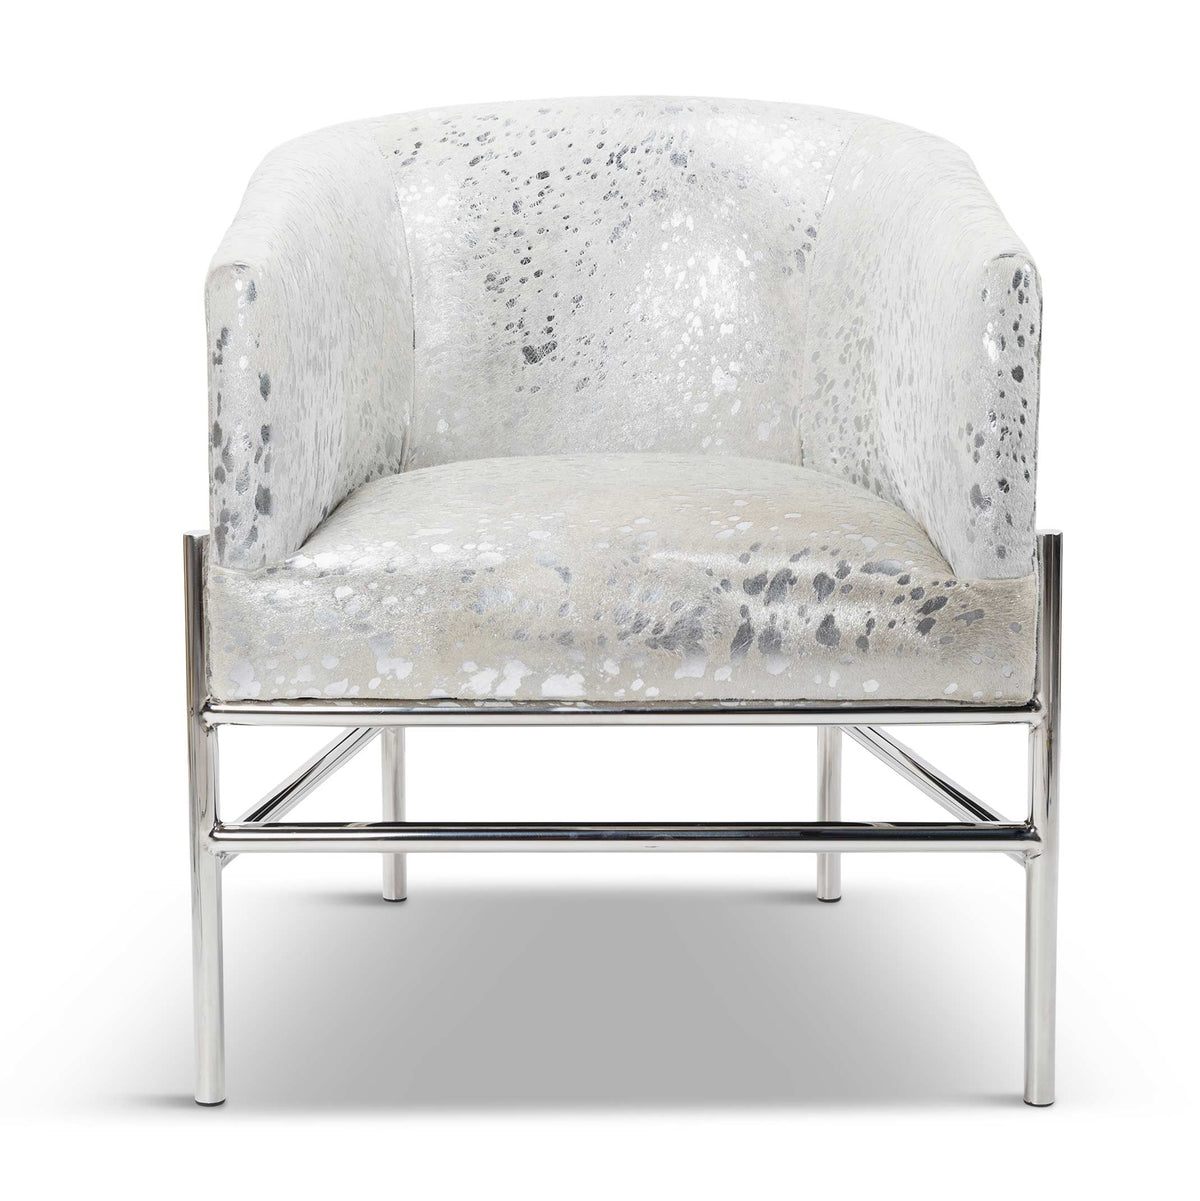 Capri Dining Chair in Silver Speckled Cowhide